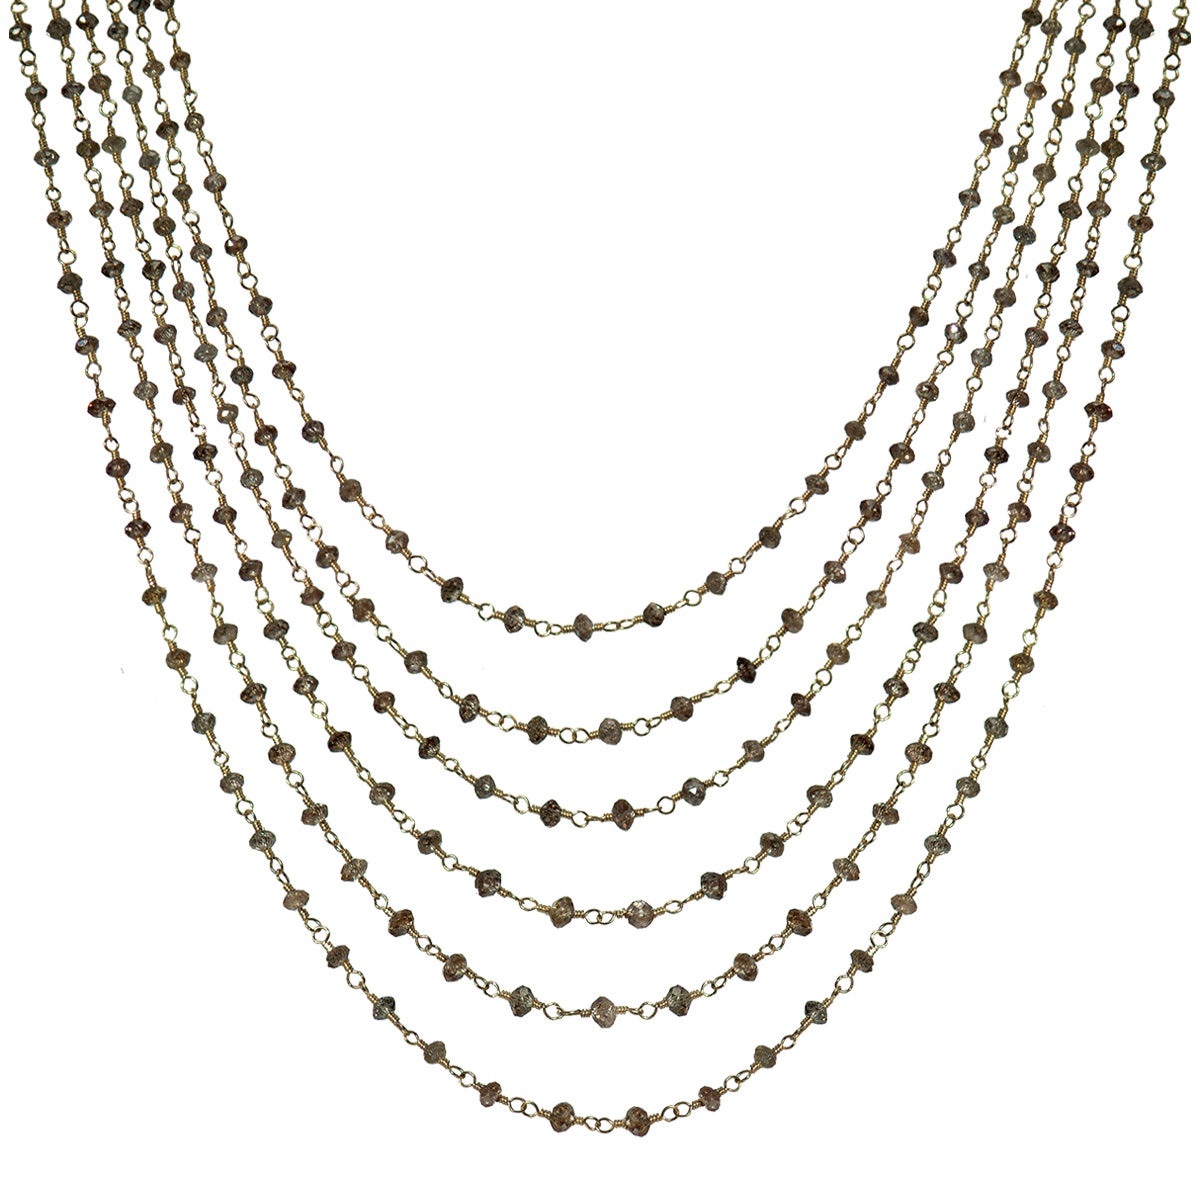 18K Gold 6 Strand Brown Diamond Chain